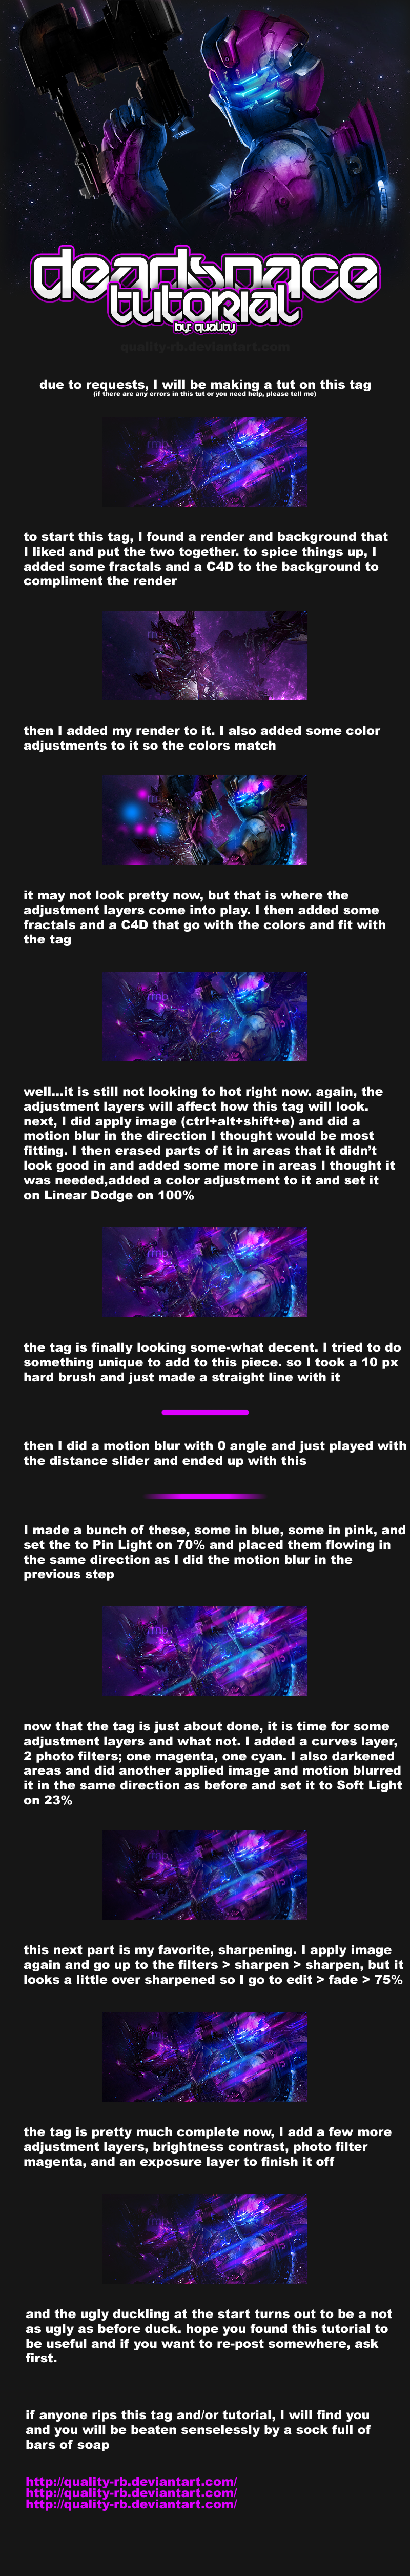 Dead space tutorial 2 by quality rb on deviantart for Space art tutorial